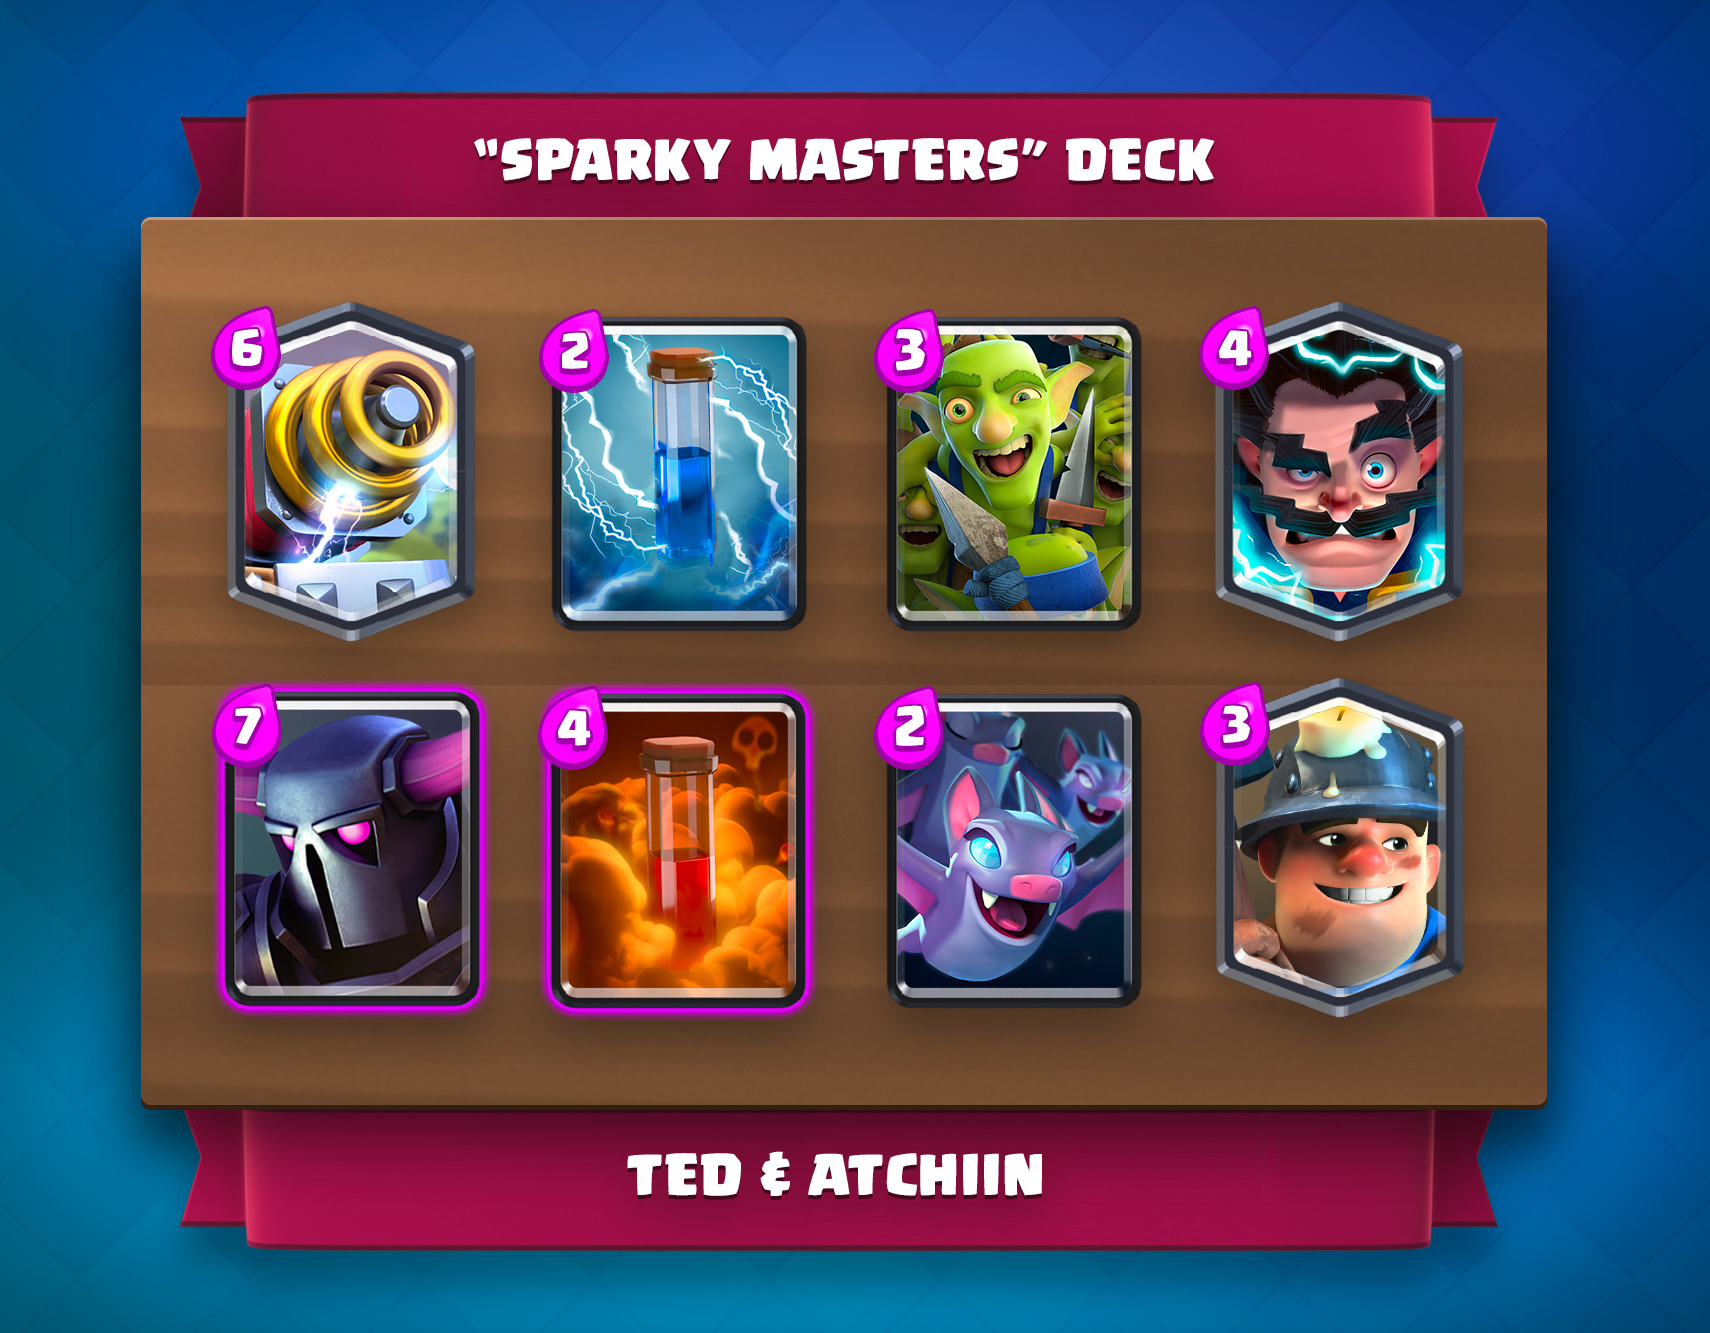 sparky-masters-deck.jpg?mtime=20171023081225#asset:2809